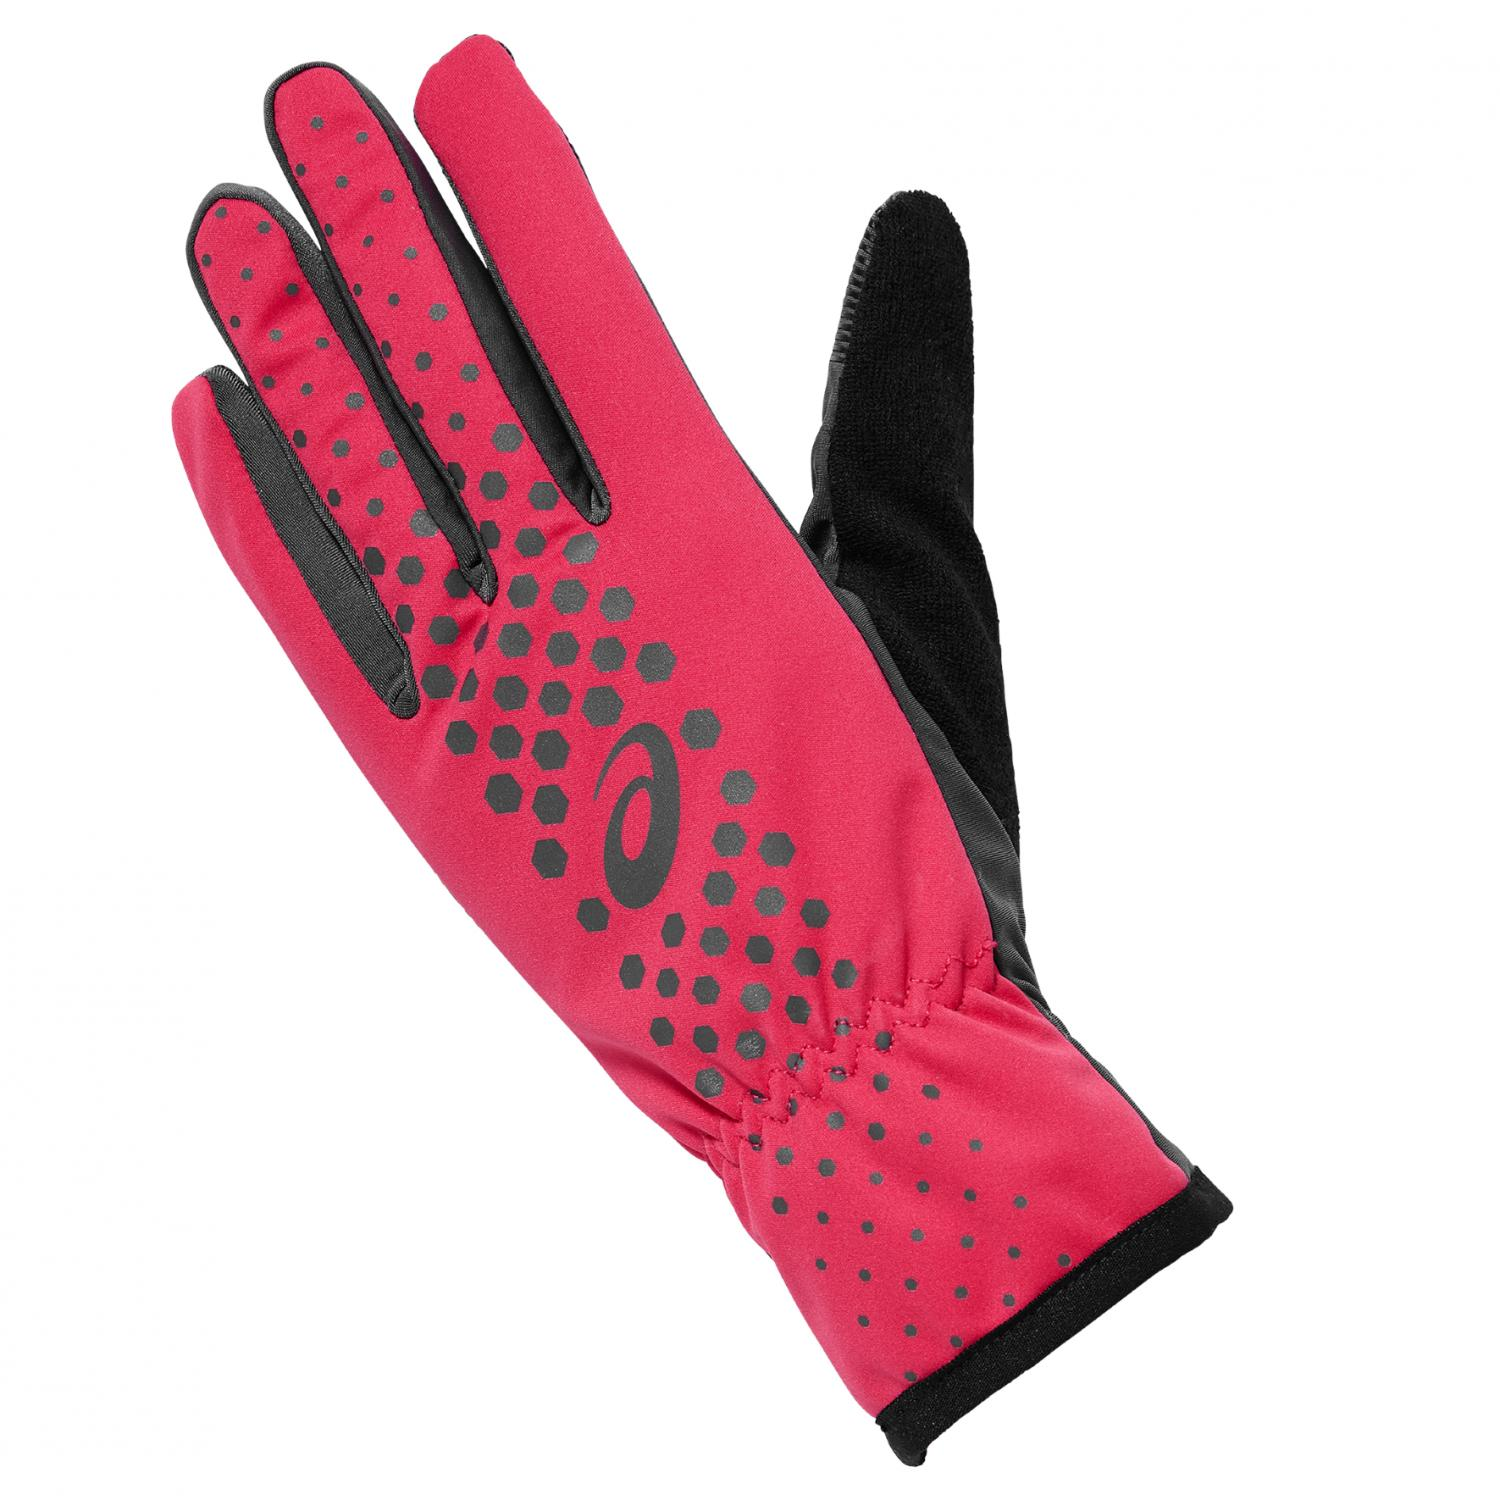 Asics Winter Performance Gloves - Cosmo Pink